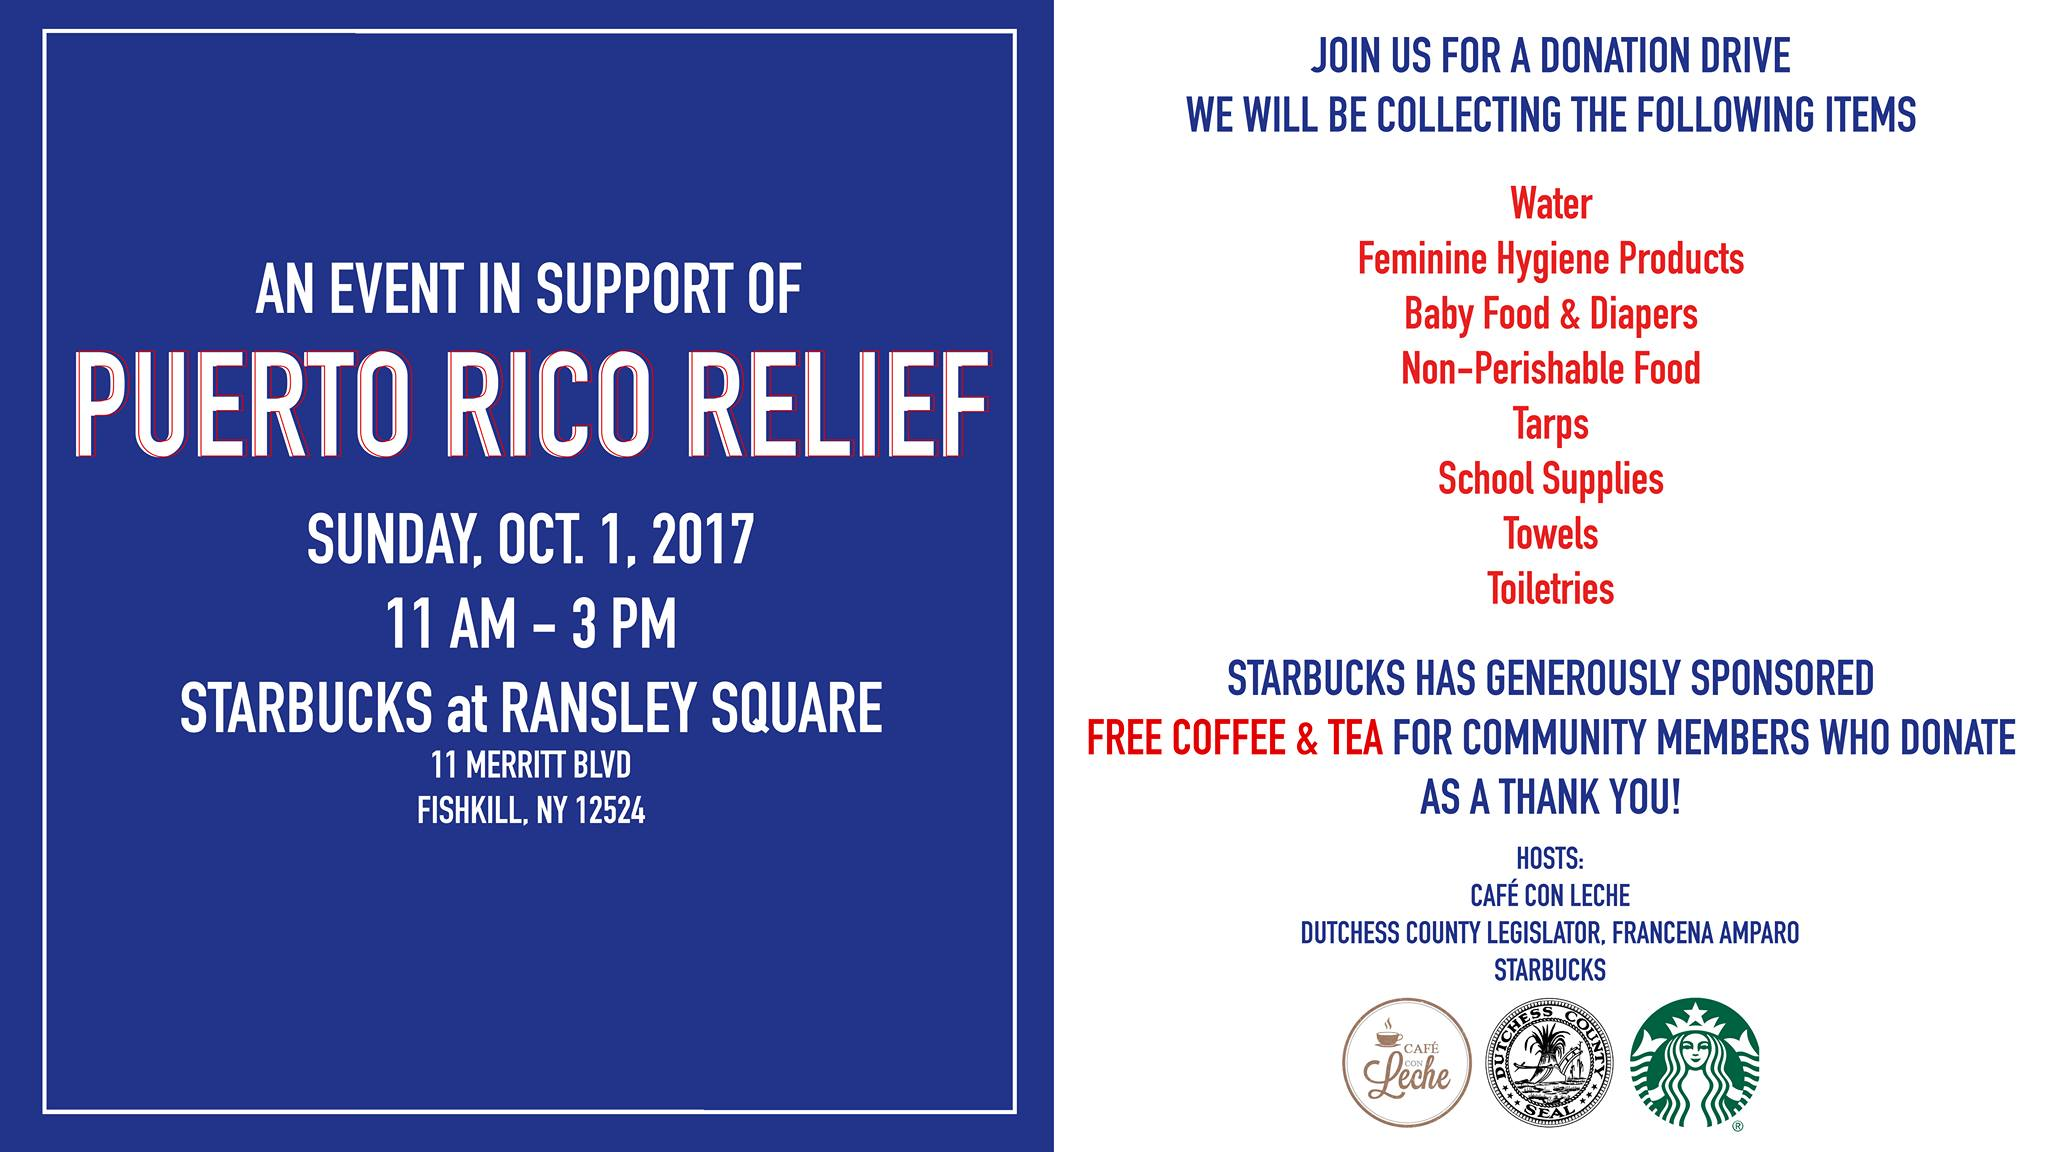 Huricane Relief Drive to Benefit Puerto Rico